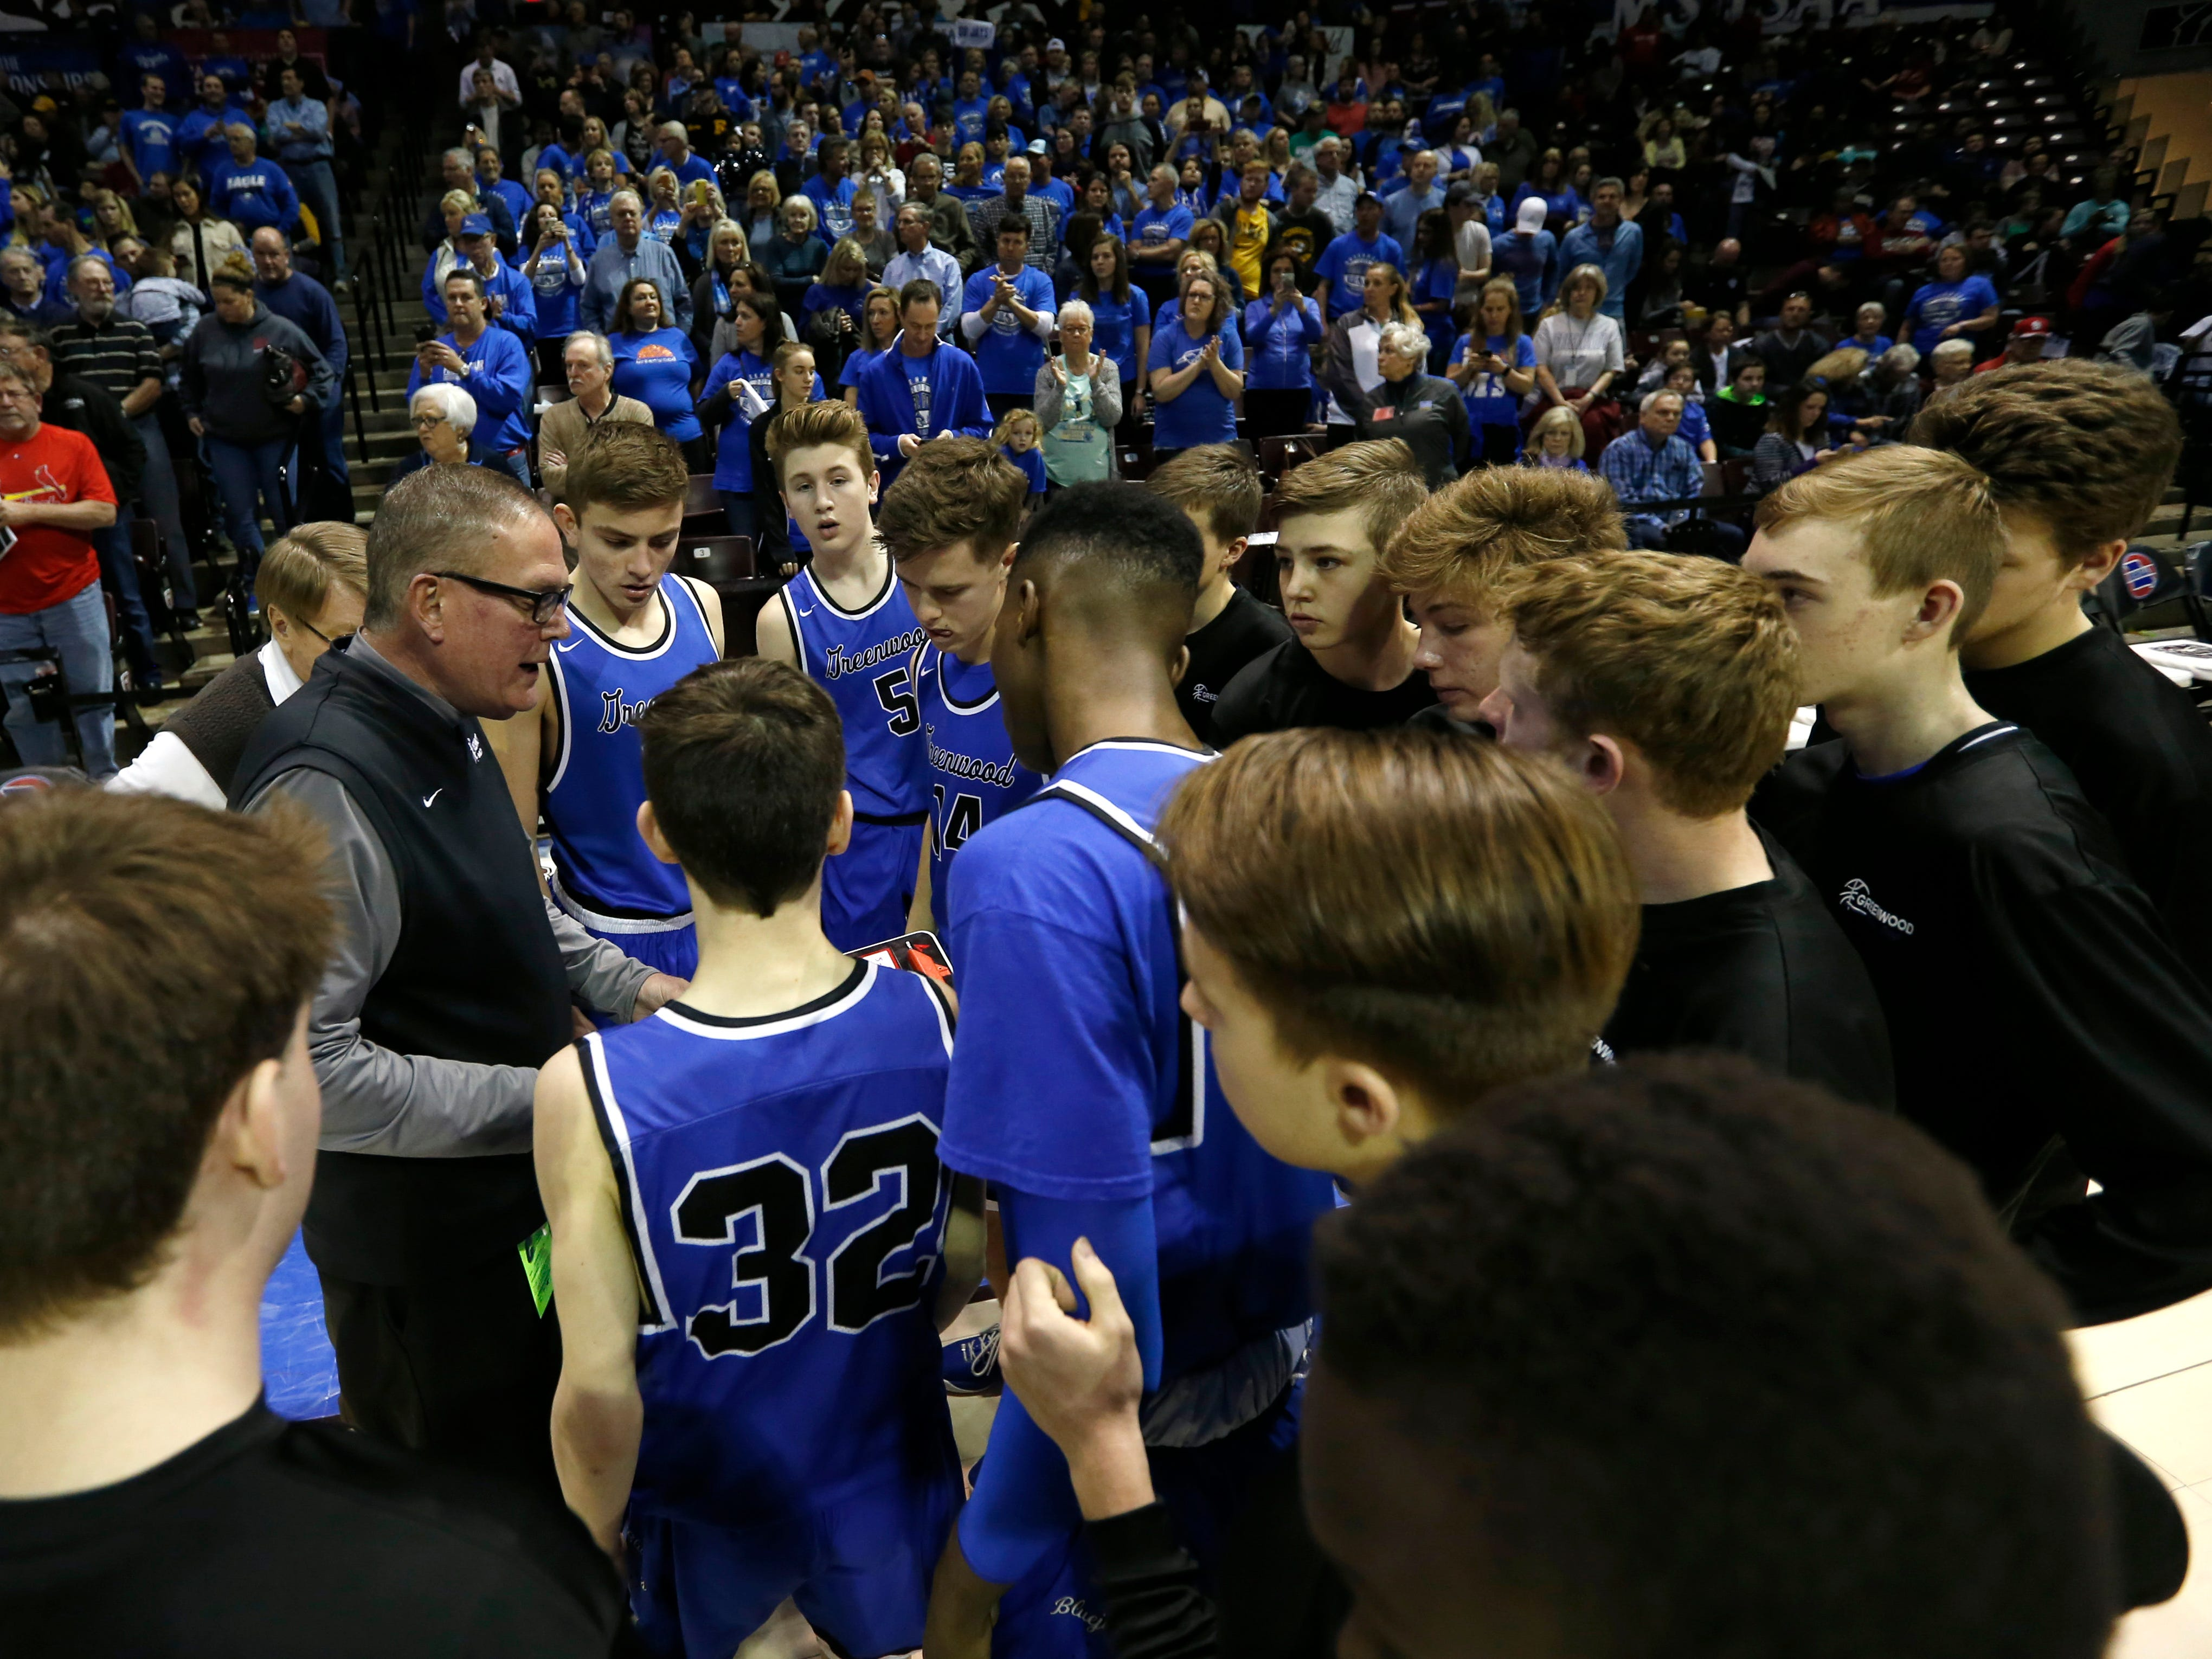 The Greenwood Blue Jays take on the Oran Eagles in the Class 2 state championship game at JQH Arena on Saturday, March 9, 2019.